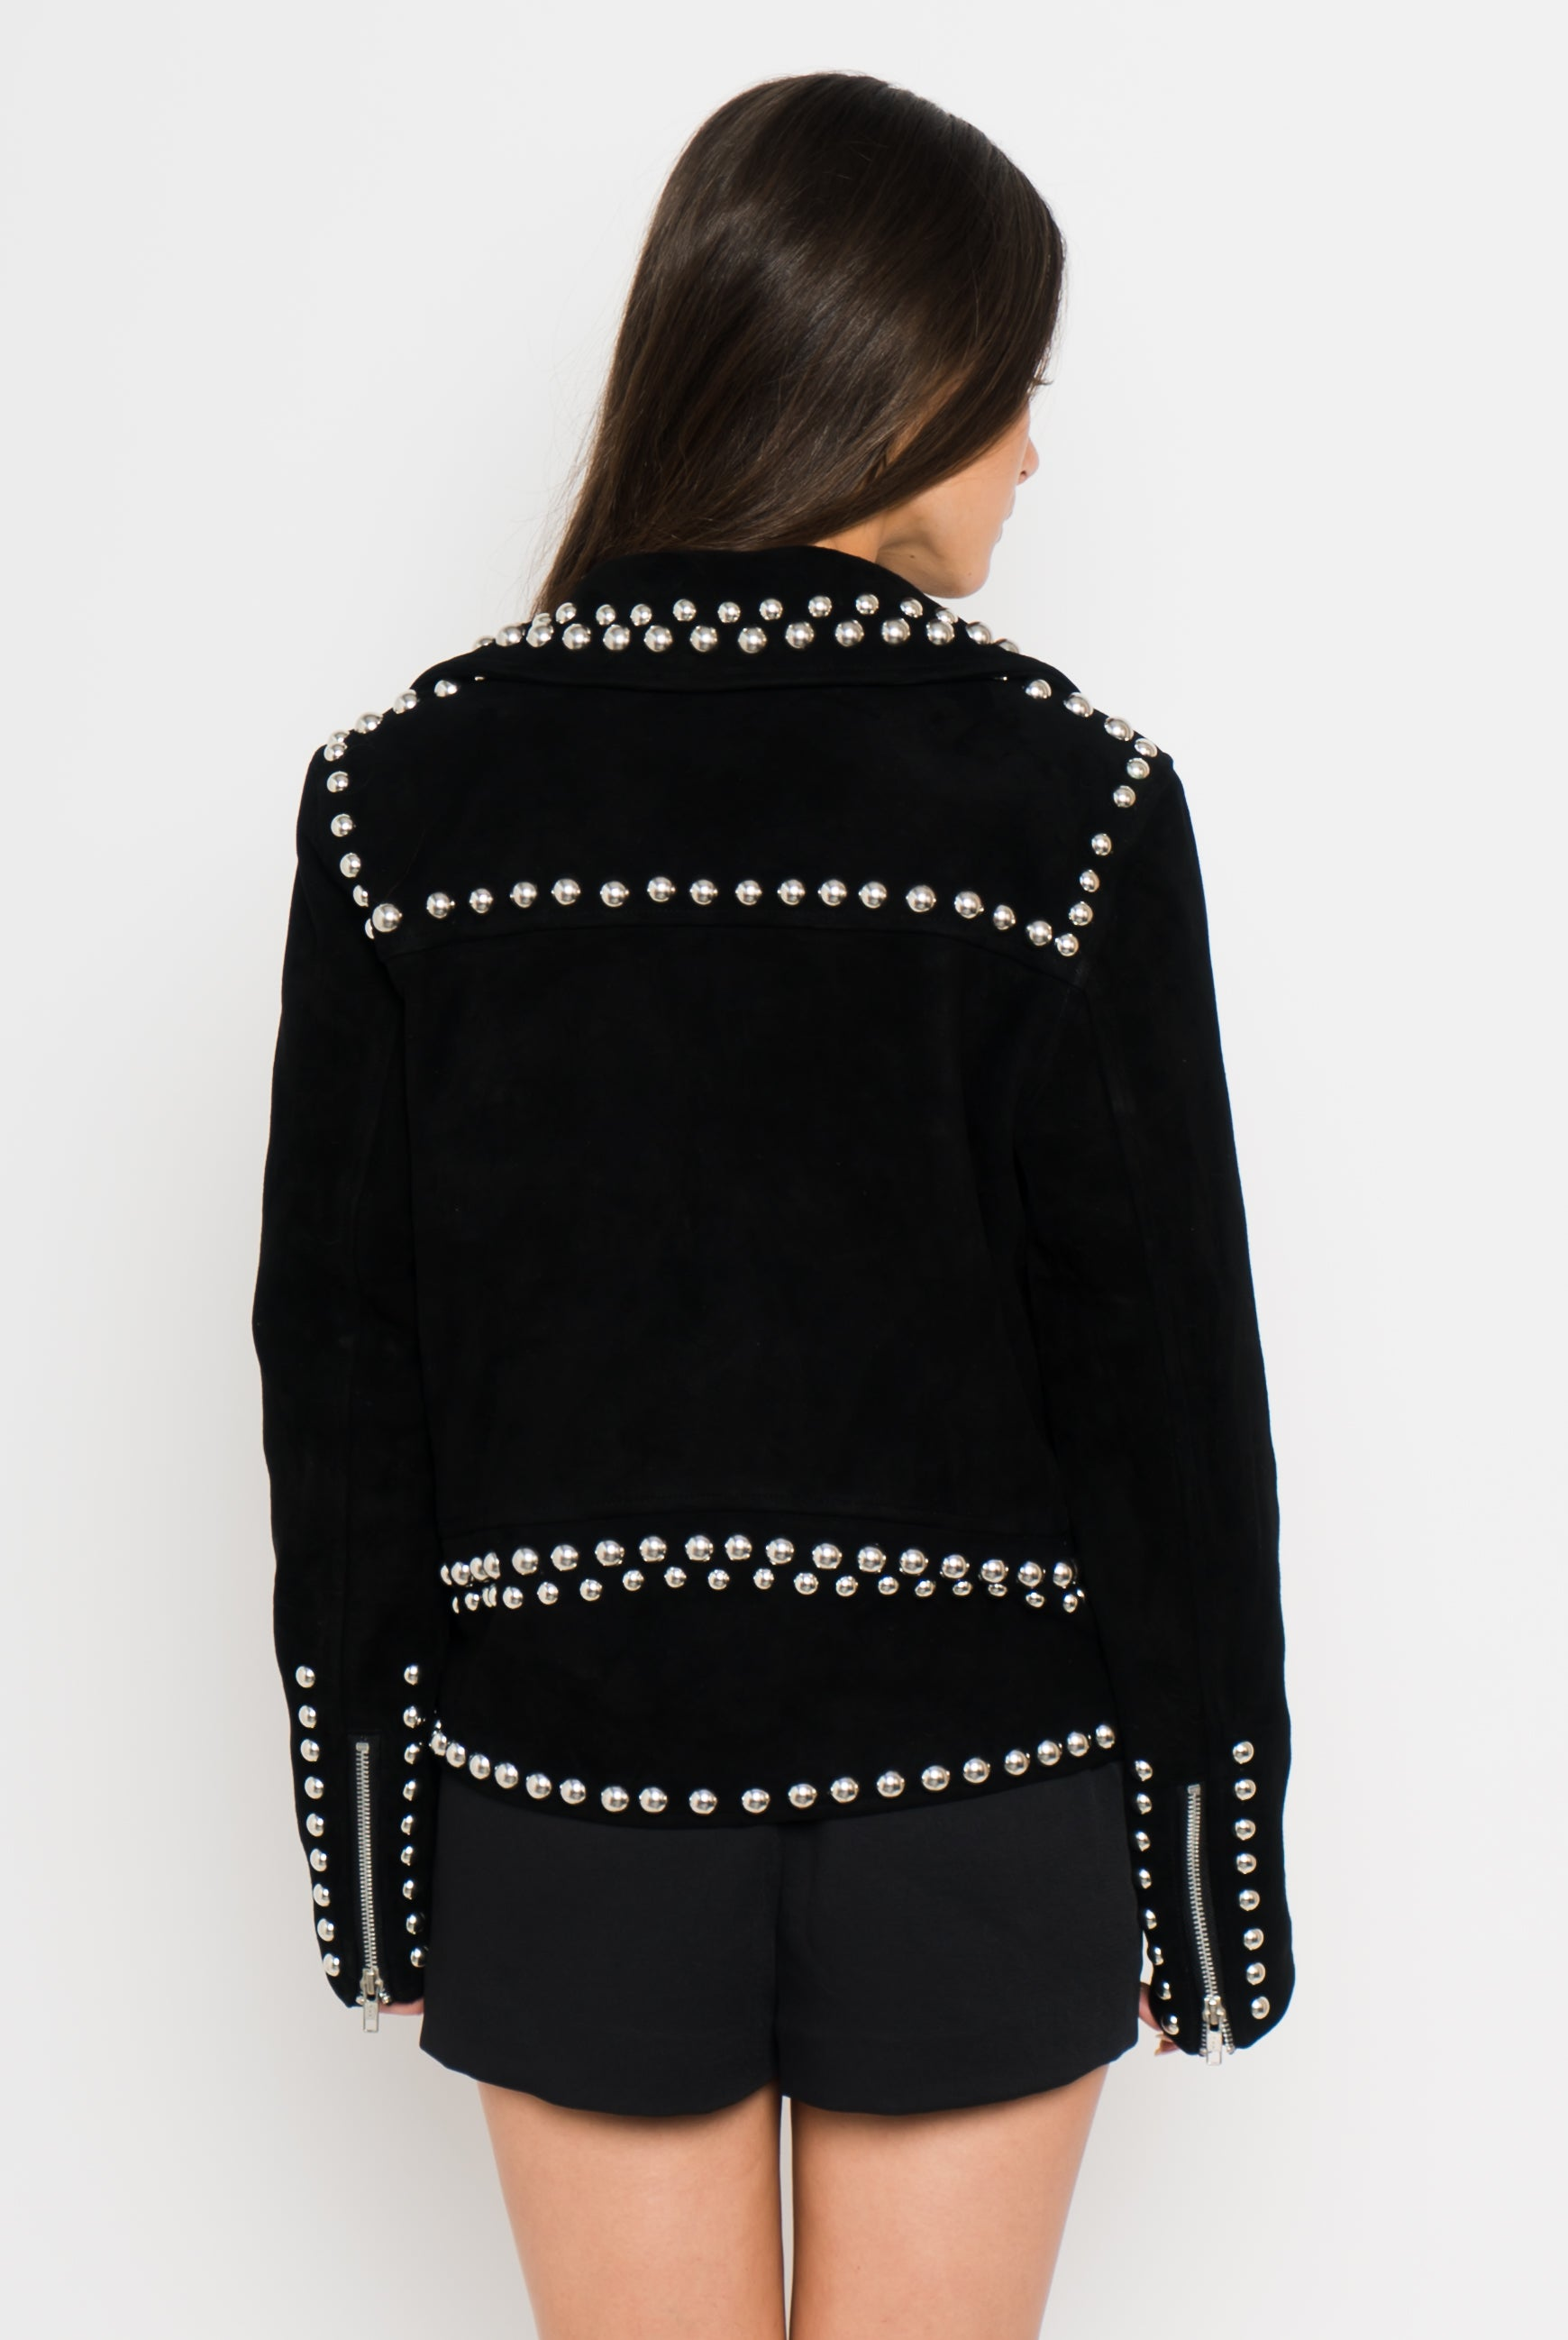 studded leather jacket womens